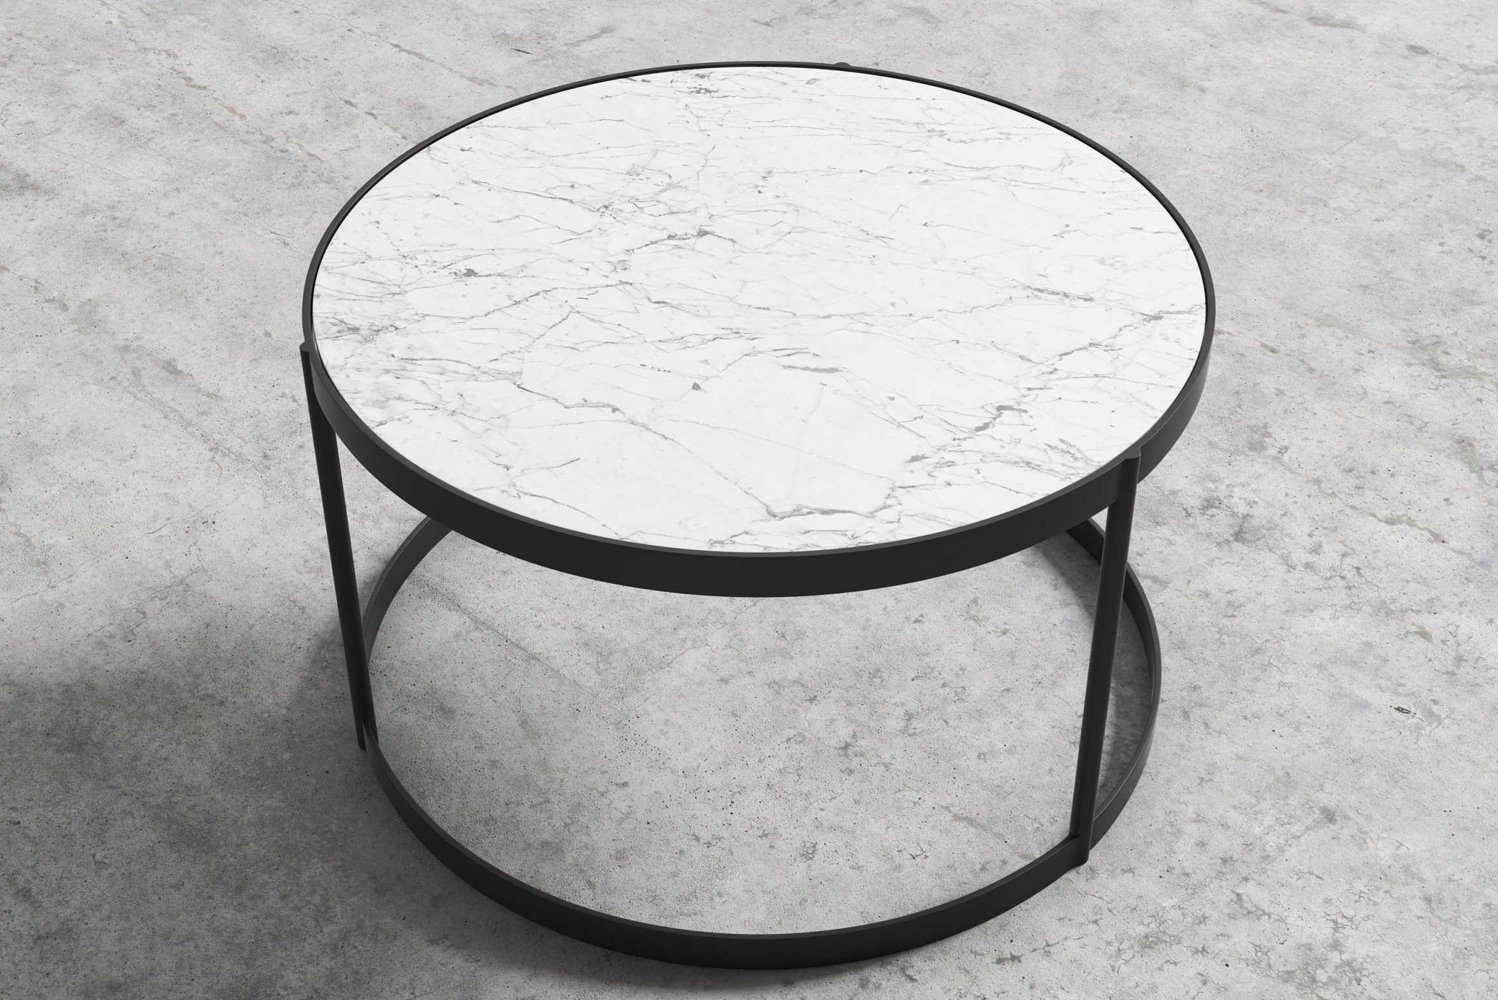 The table has three slim legs, removing clutter from the base and providing geometric stability and modern appeal.